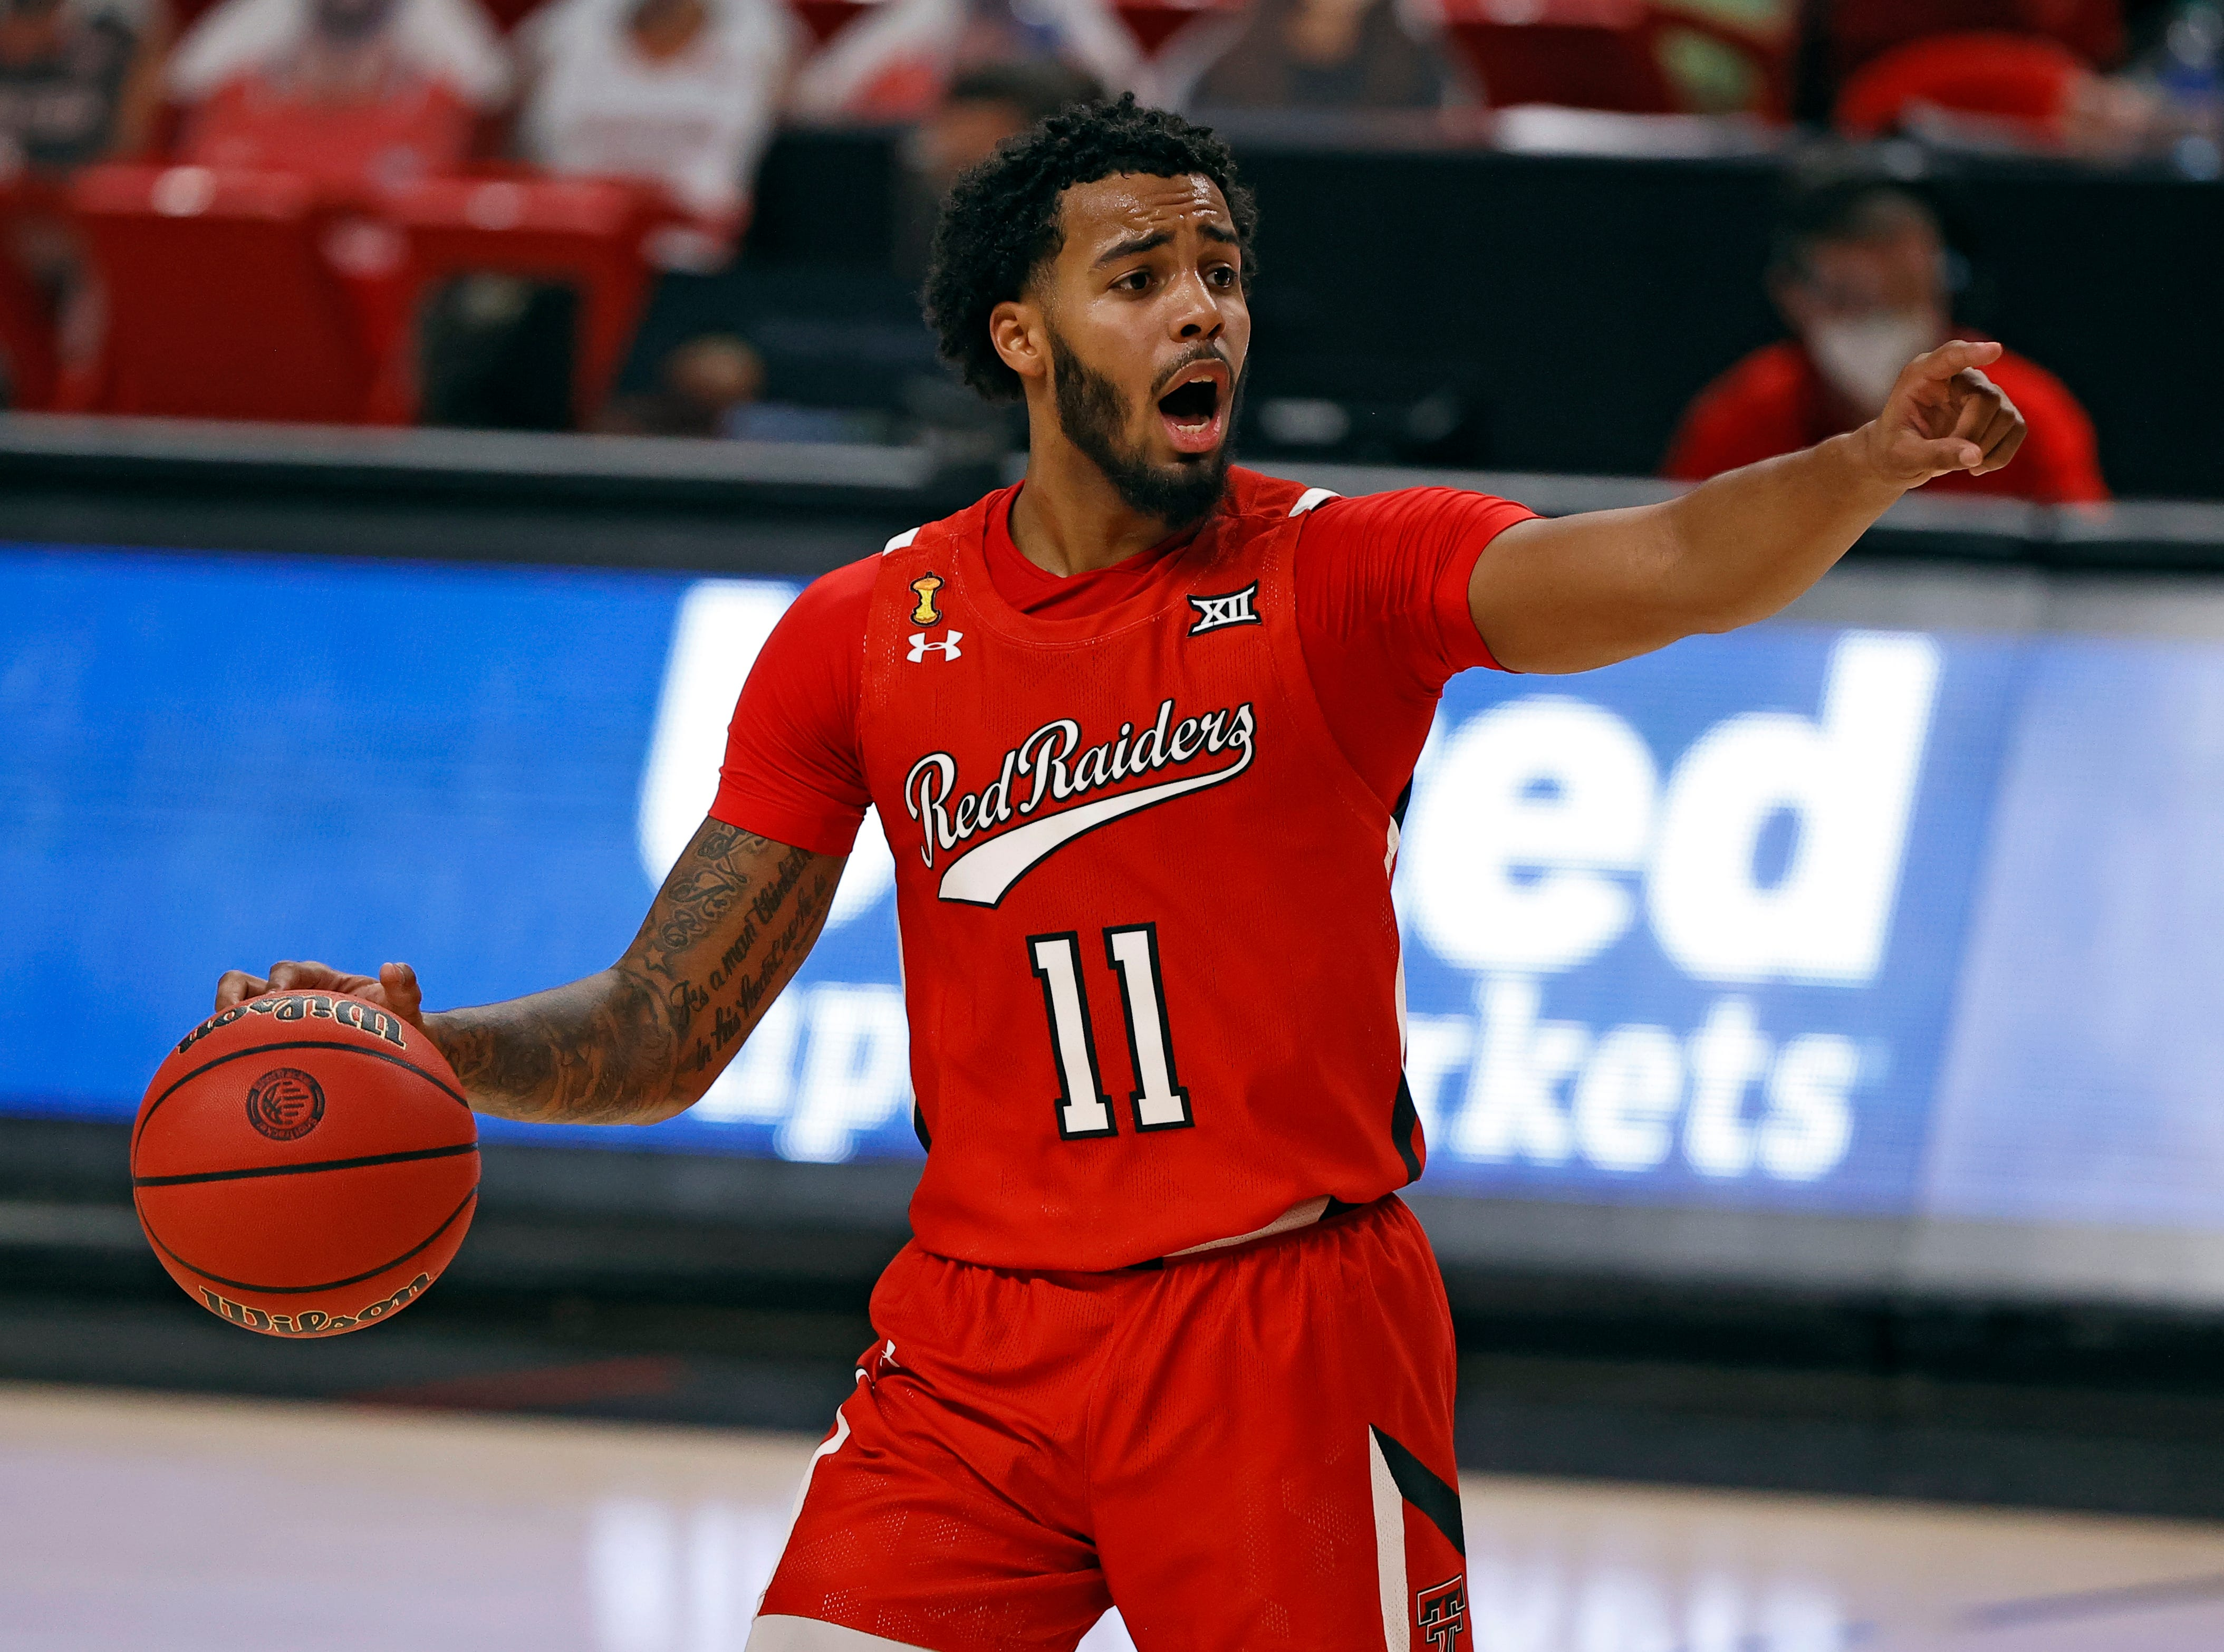 Texas Tech S Kyler Edwards Secures First Double Double No 17 Red Raiders Tour Grambling State